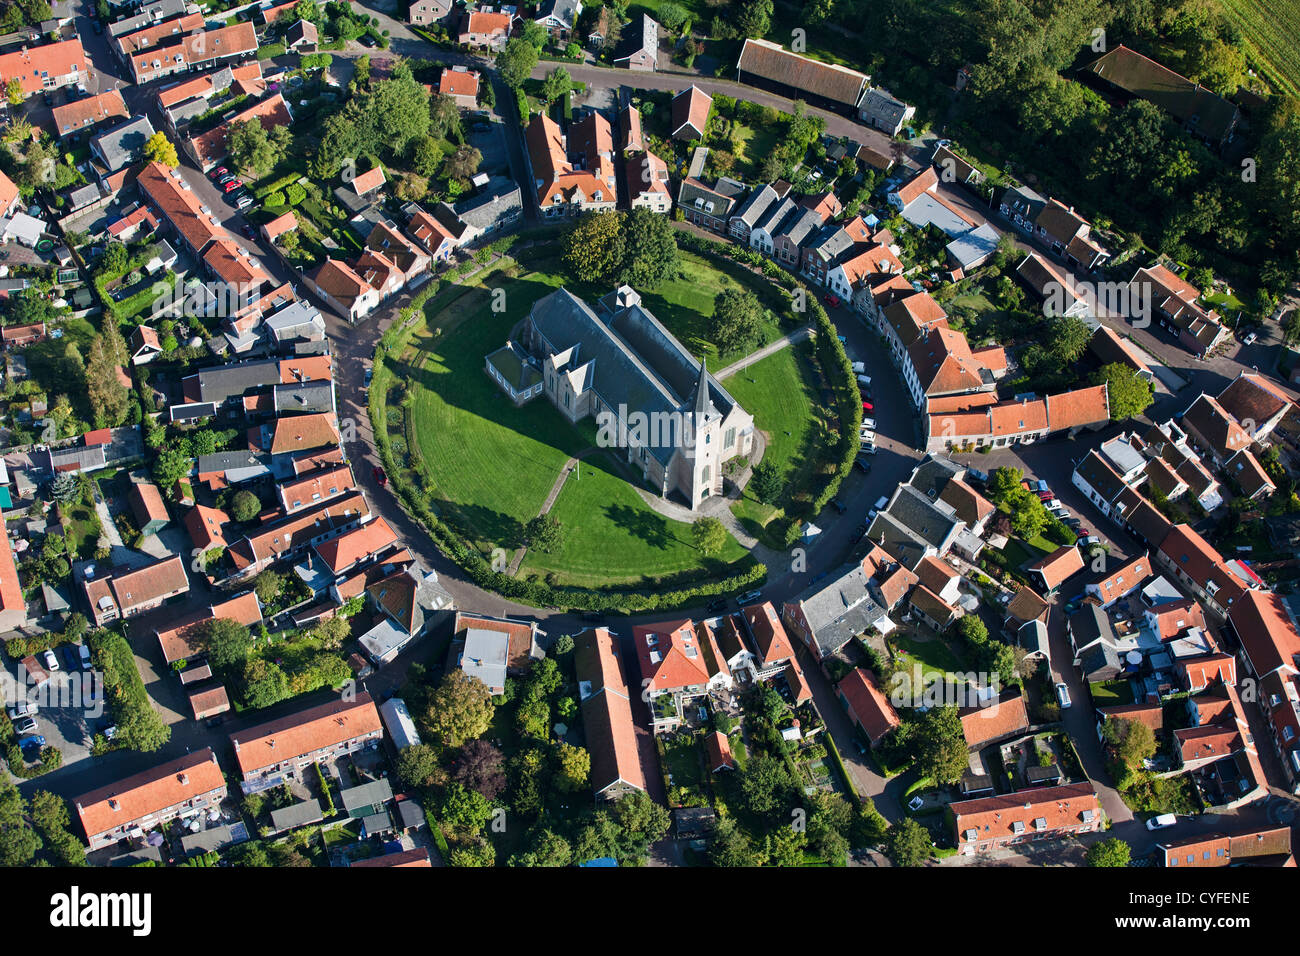 The Netherlands, Dreischor, View on the circular village center and church. Aerial. - Stock Image